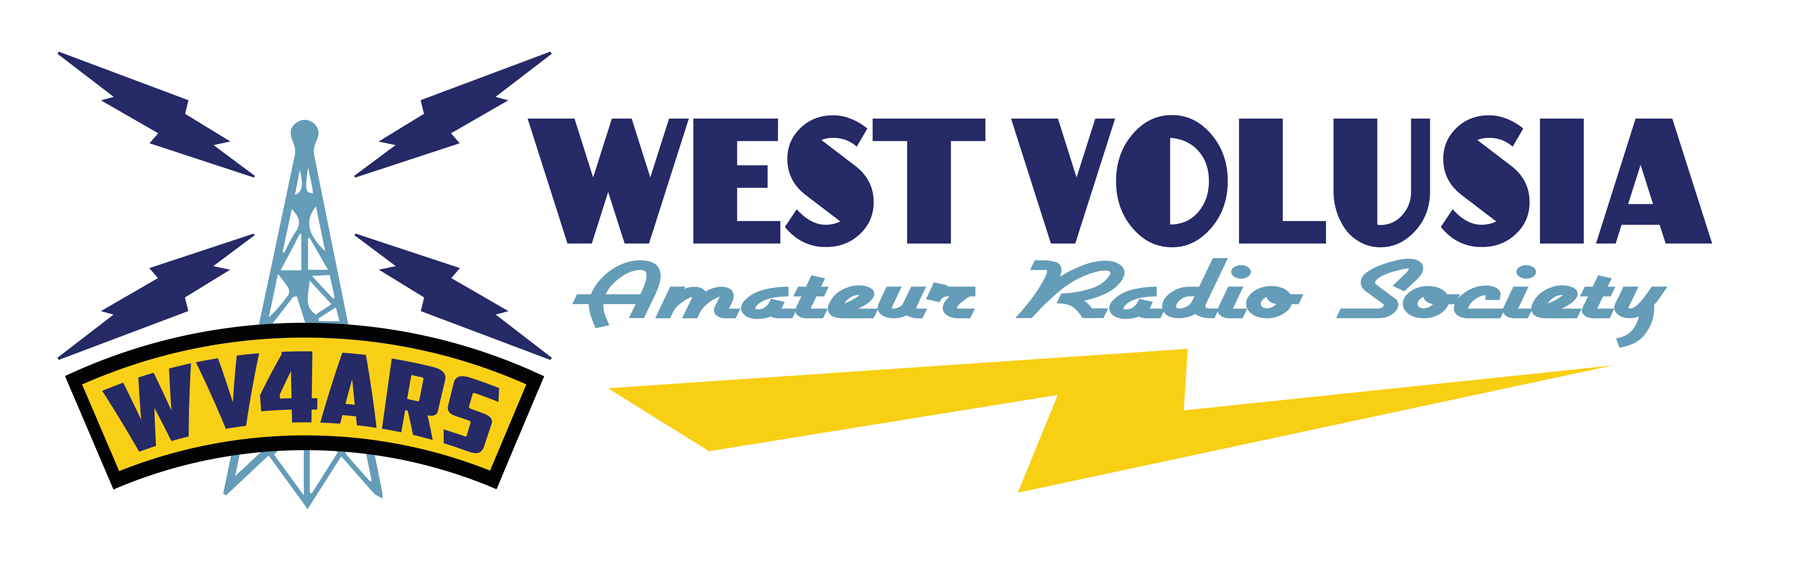 West Volusia Amateur Radio Society